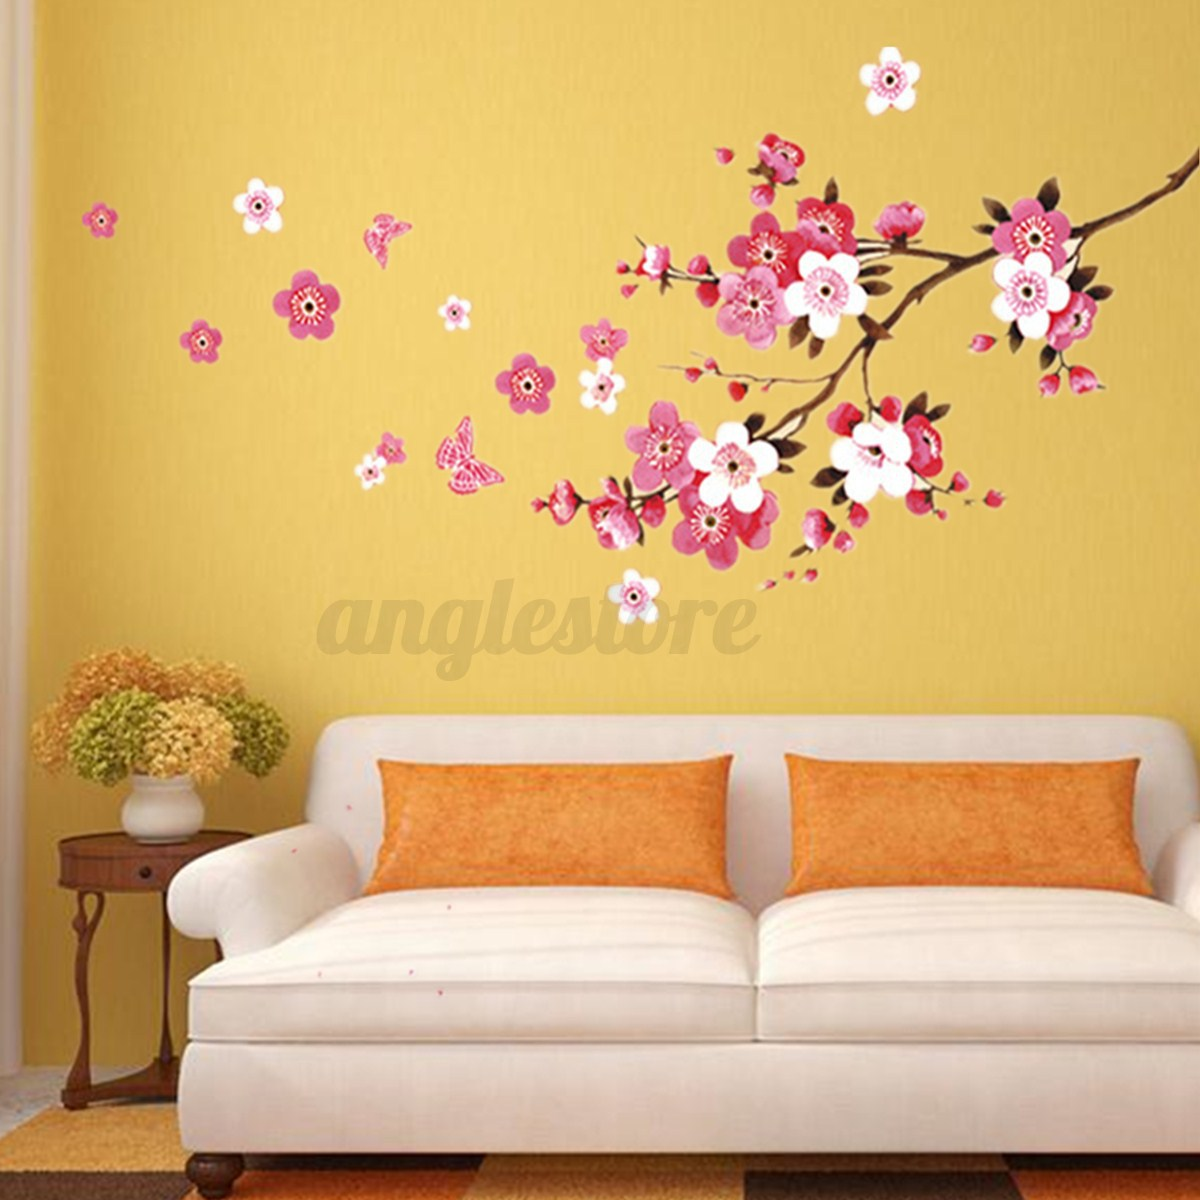 90 X 22 Large Vine Butterfly Wall Decals Removable: Large Sakura Flower Removable Wall Sticker Paper Mural Art